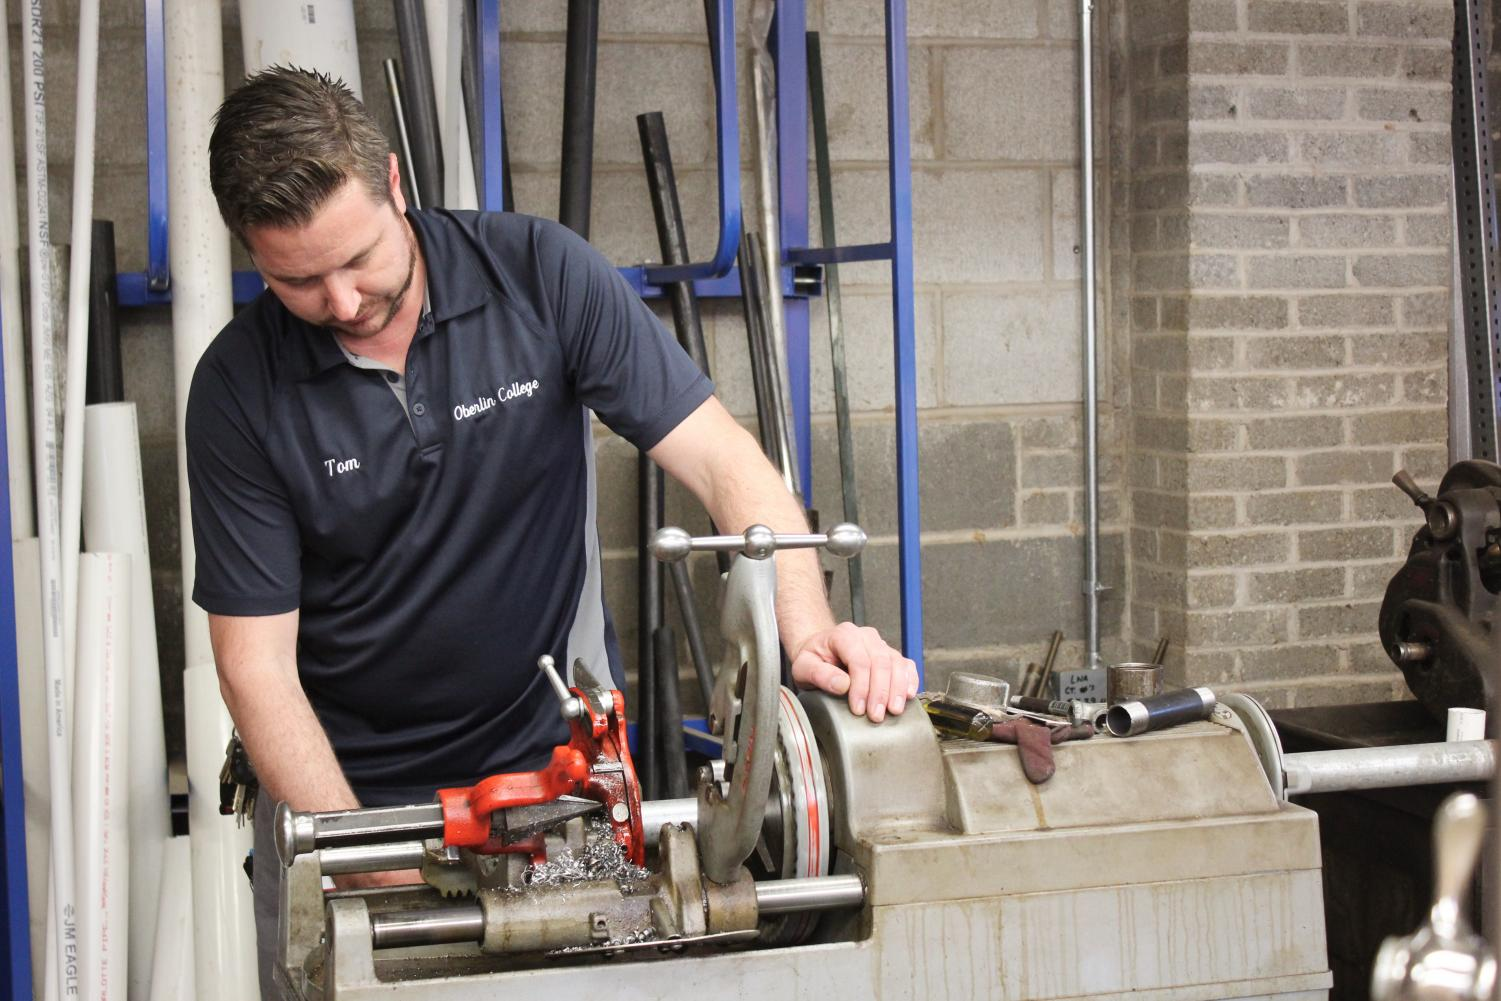 College plumber and United Auto Workers member Tom Wright works in Facilities Operations on campus